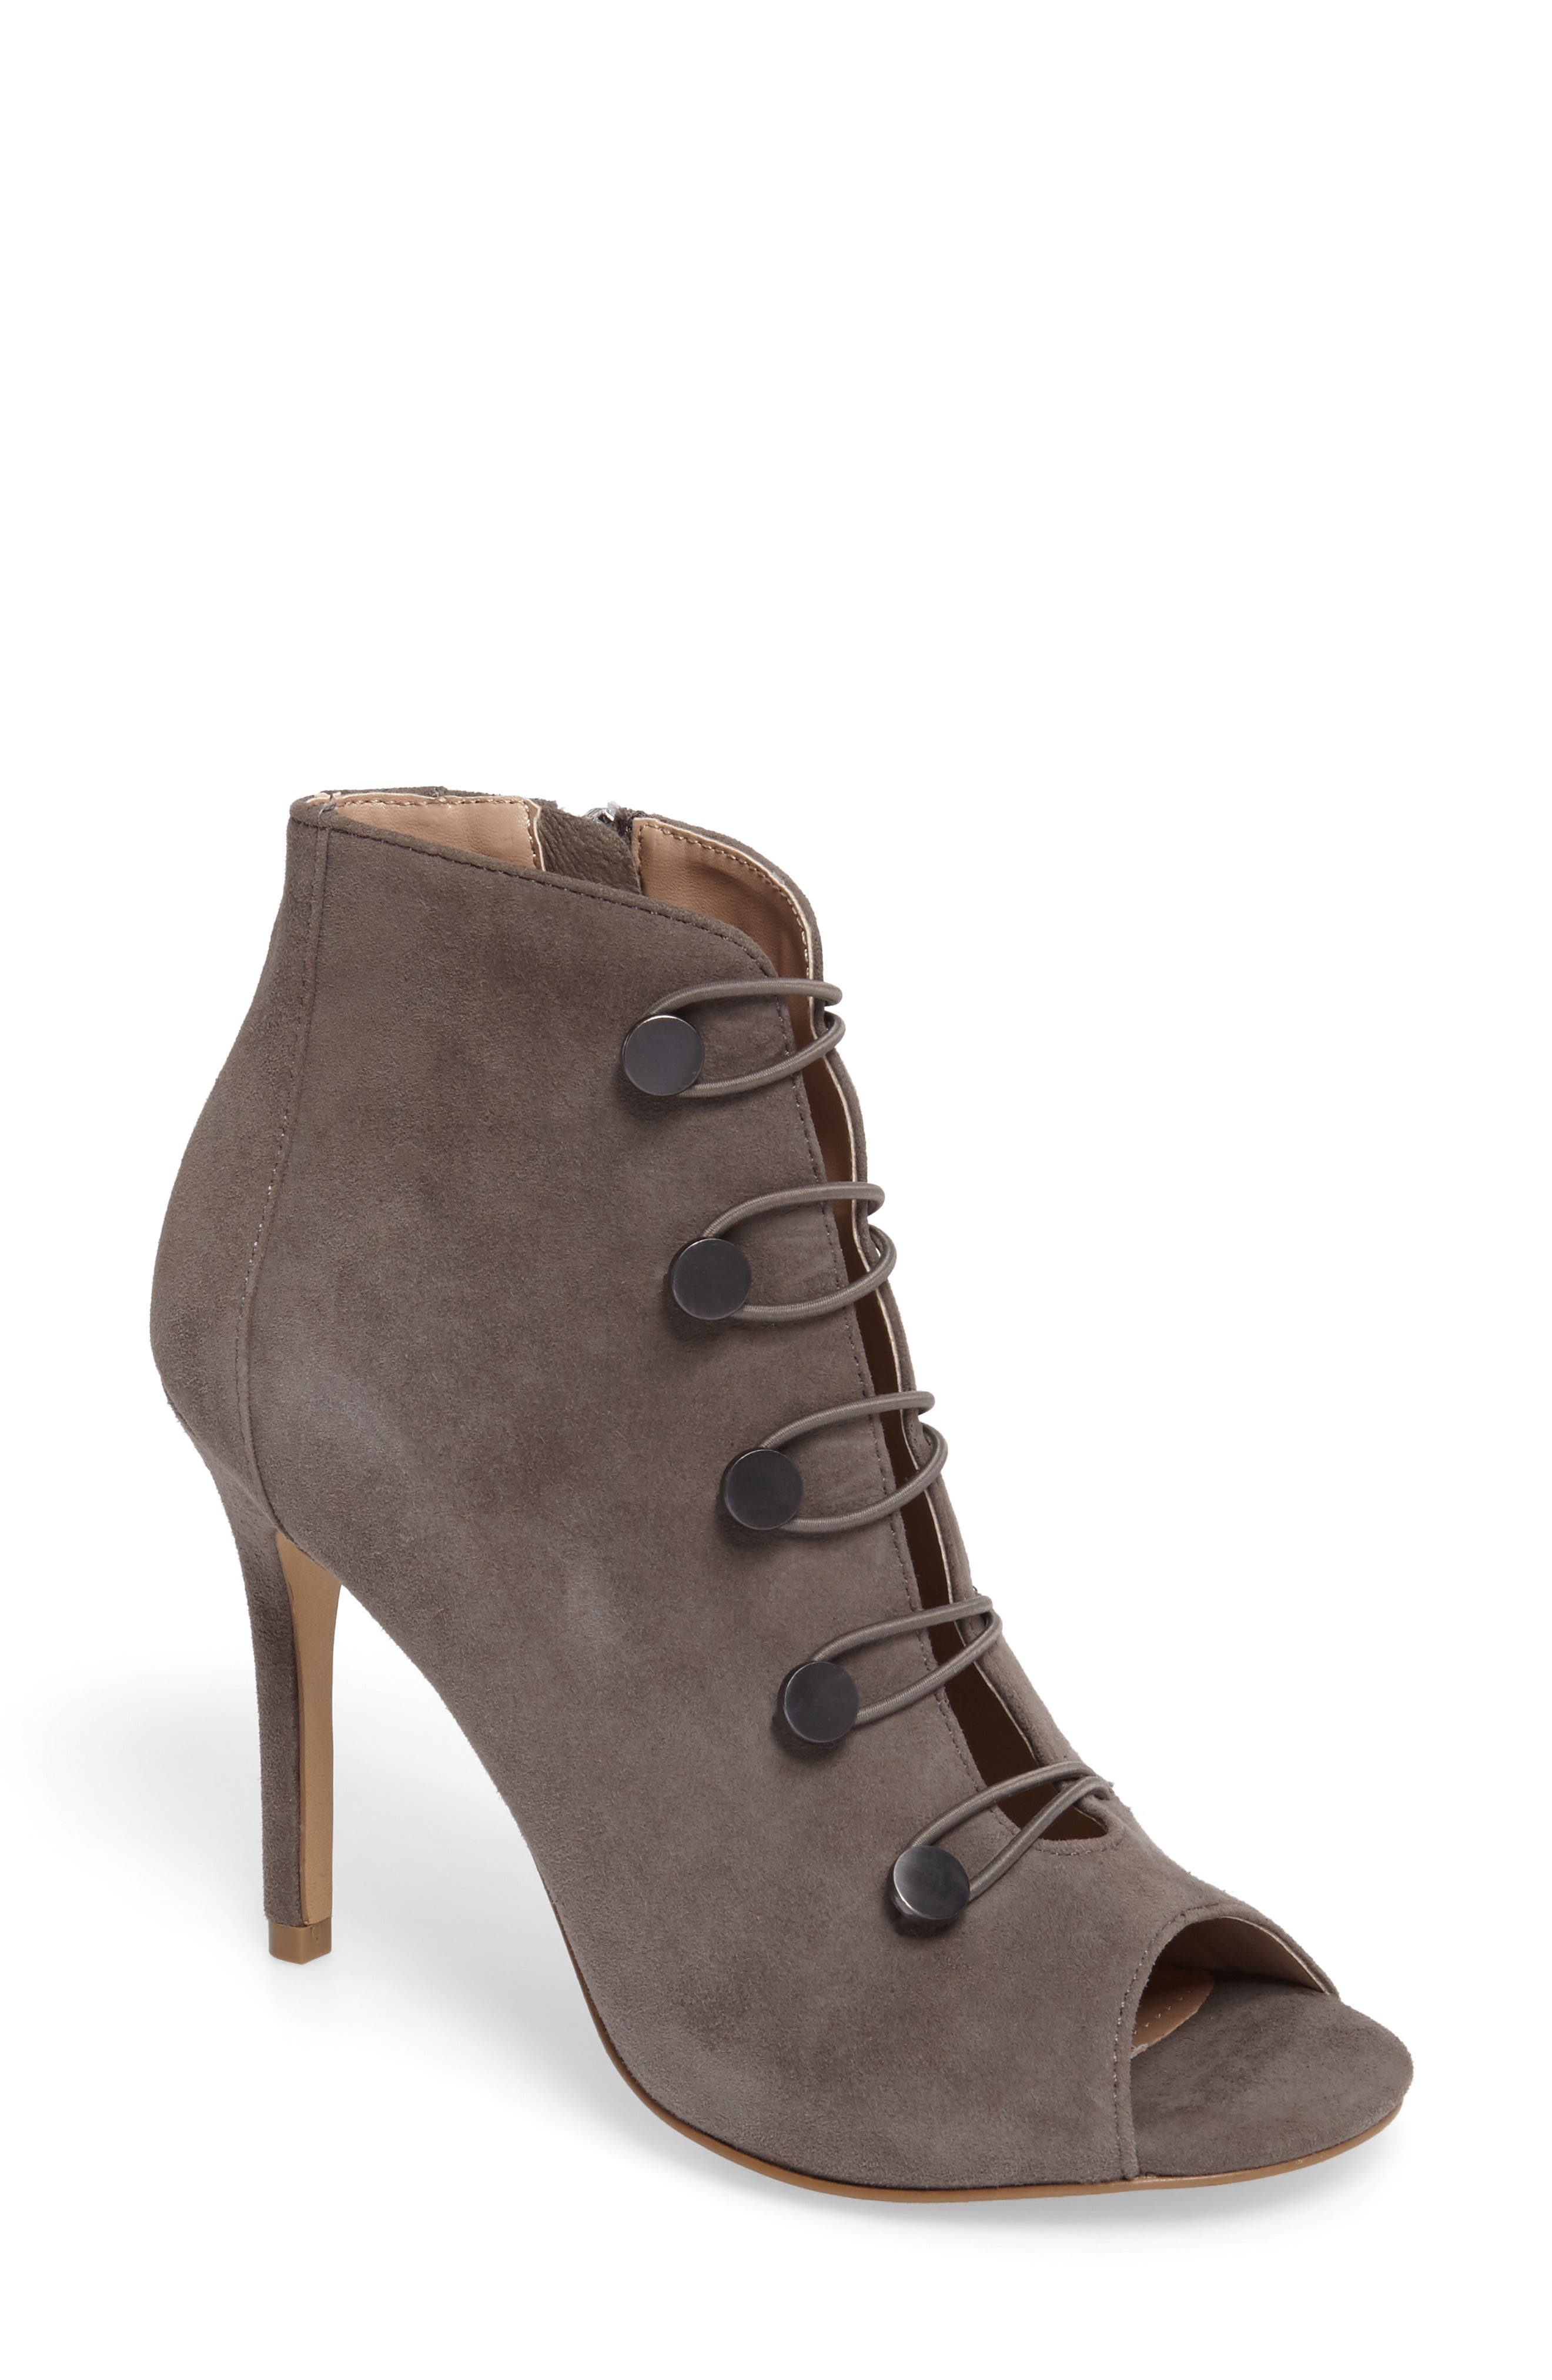 Alternate Image 1 Selected - Charles by Charles David Royalty Bootie (Women)